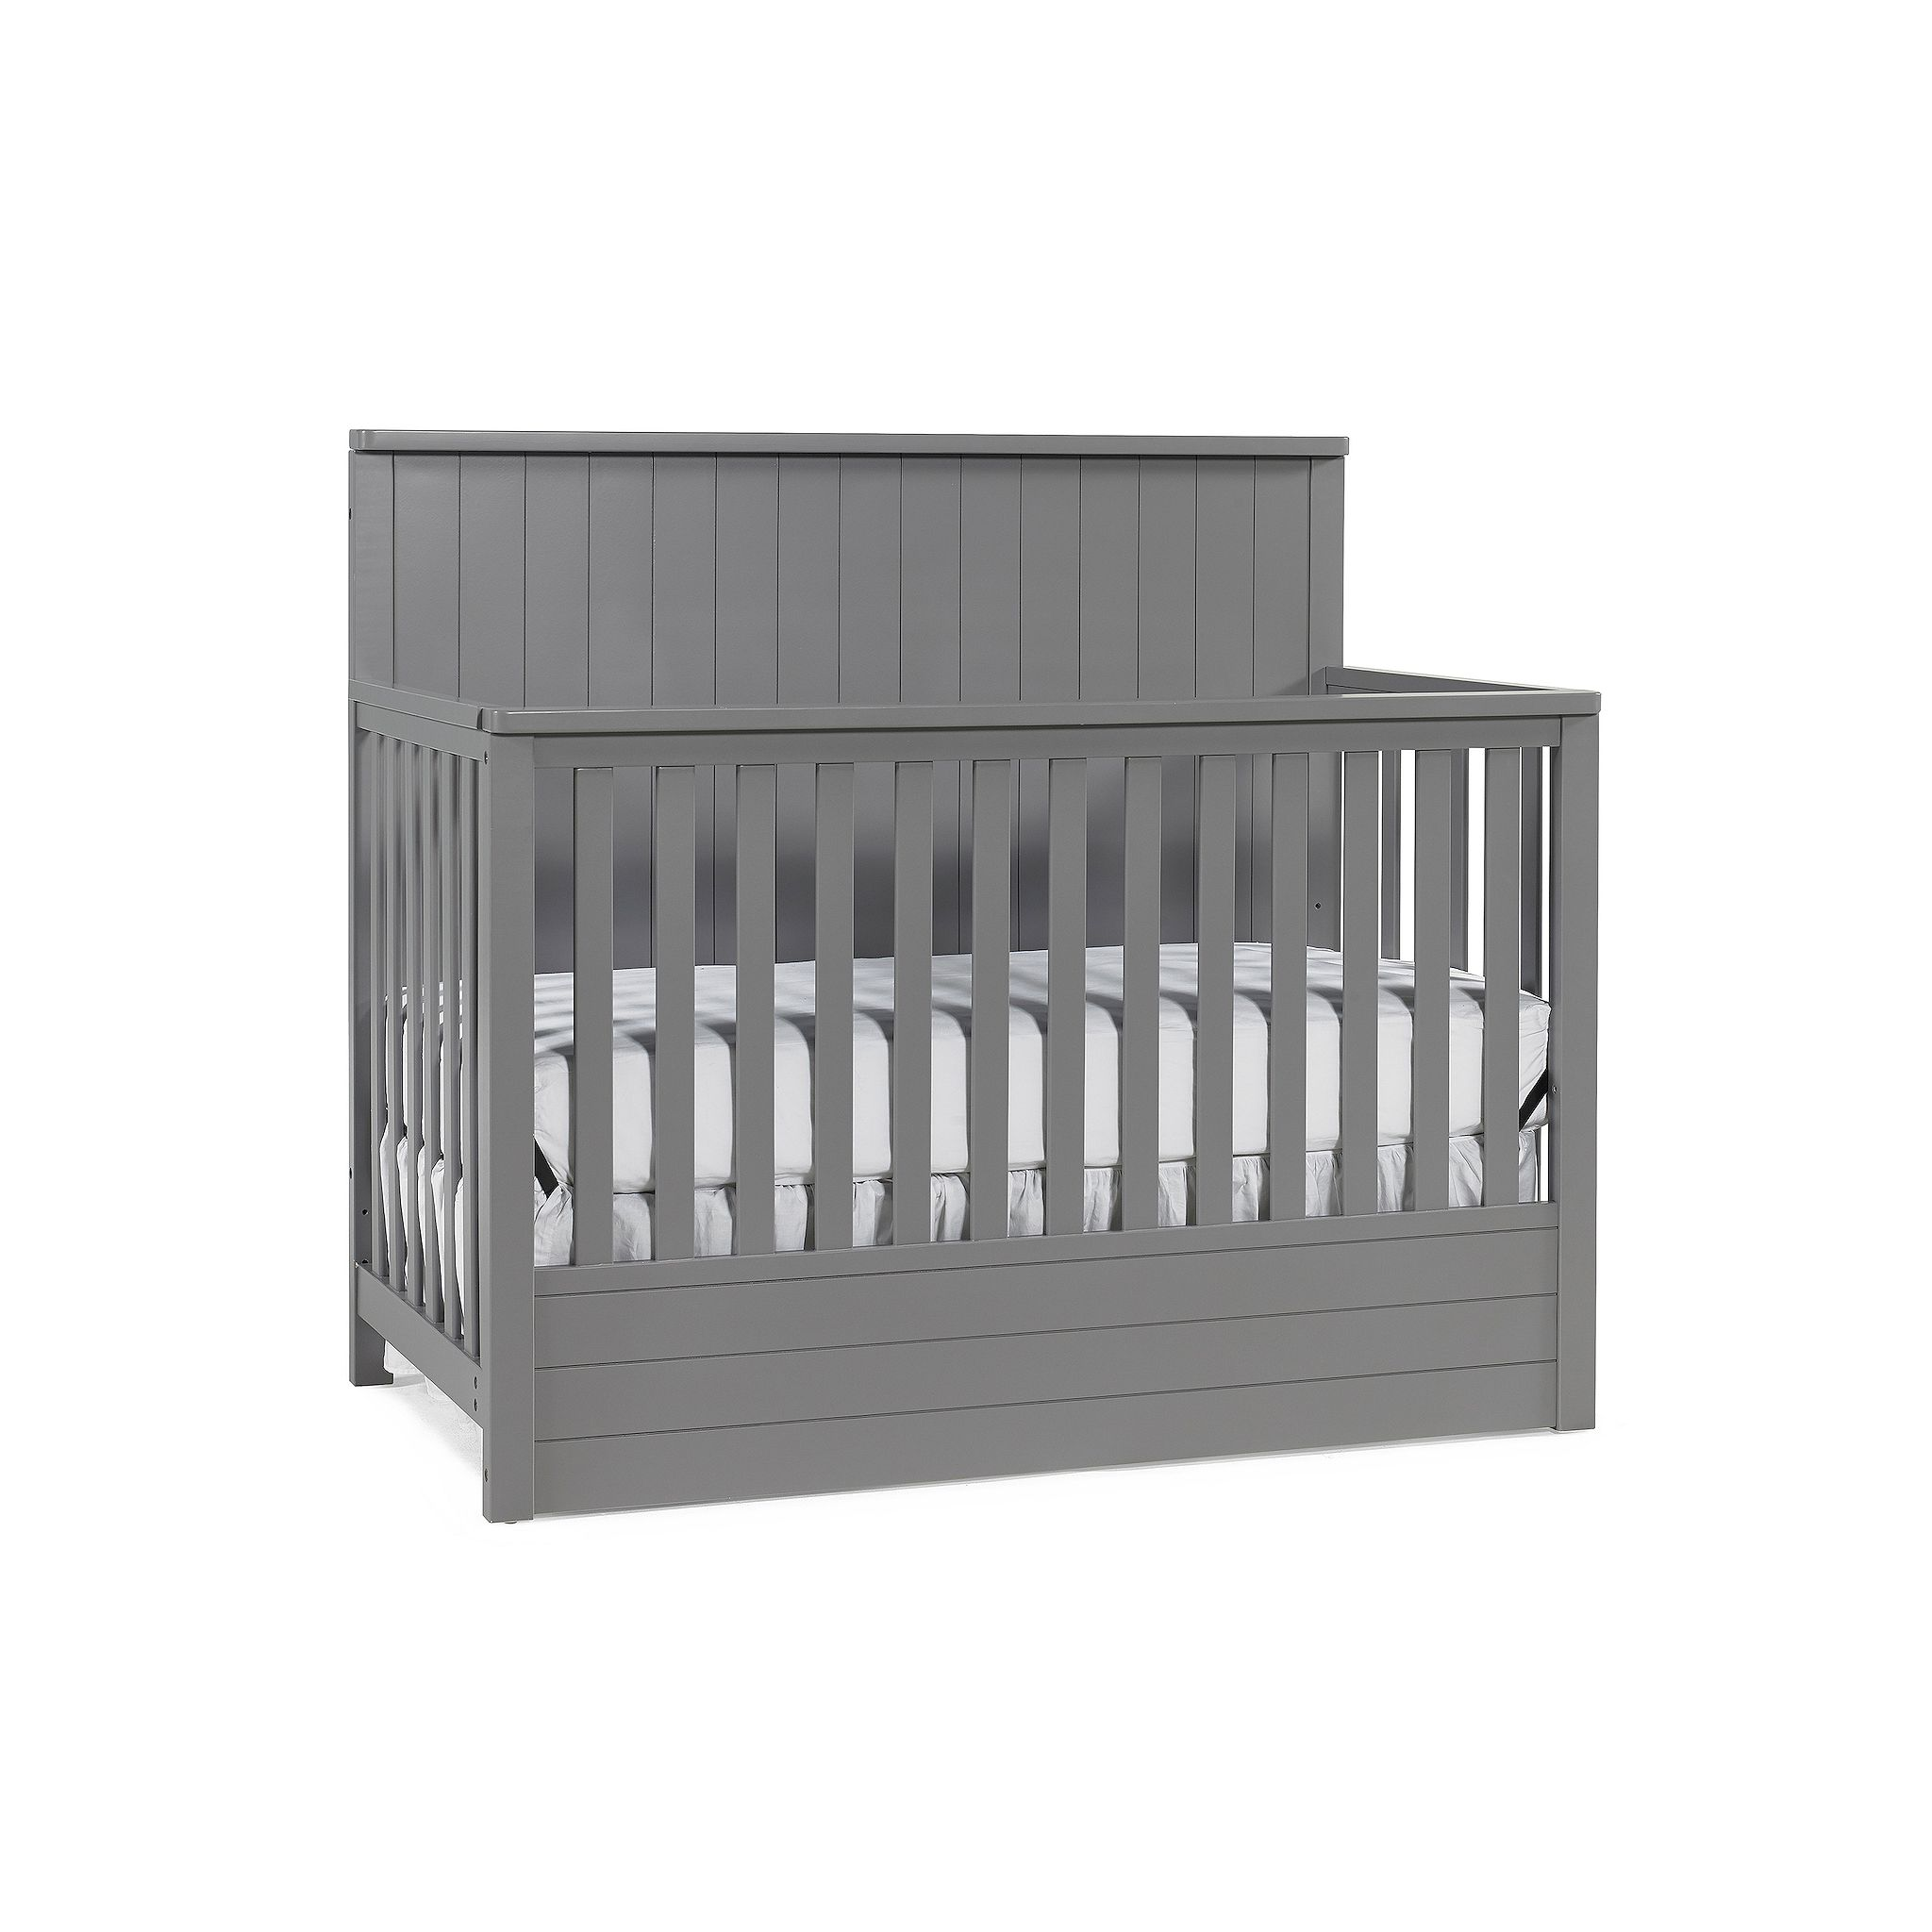 Ti Amo Bradlee Convertible Crib + $40 Kohls Rewards